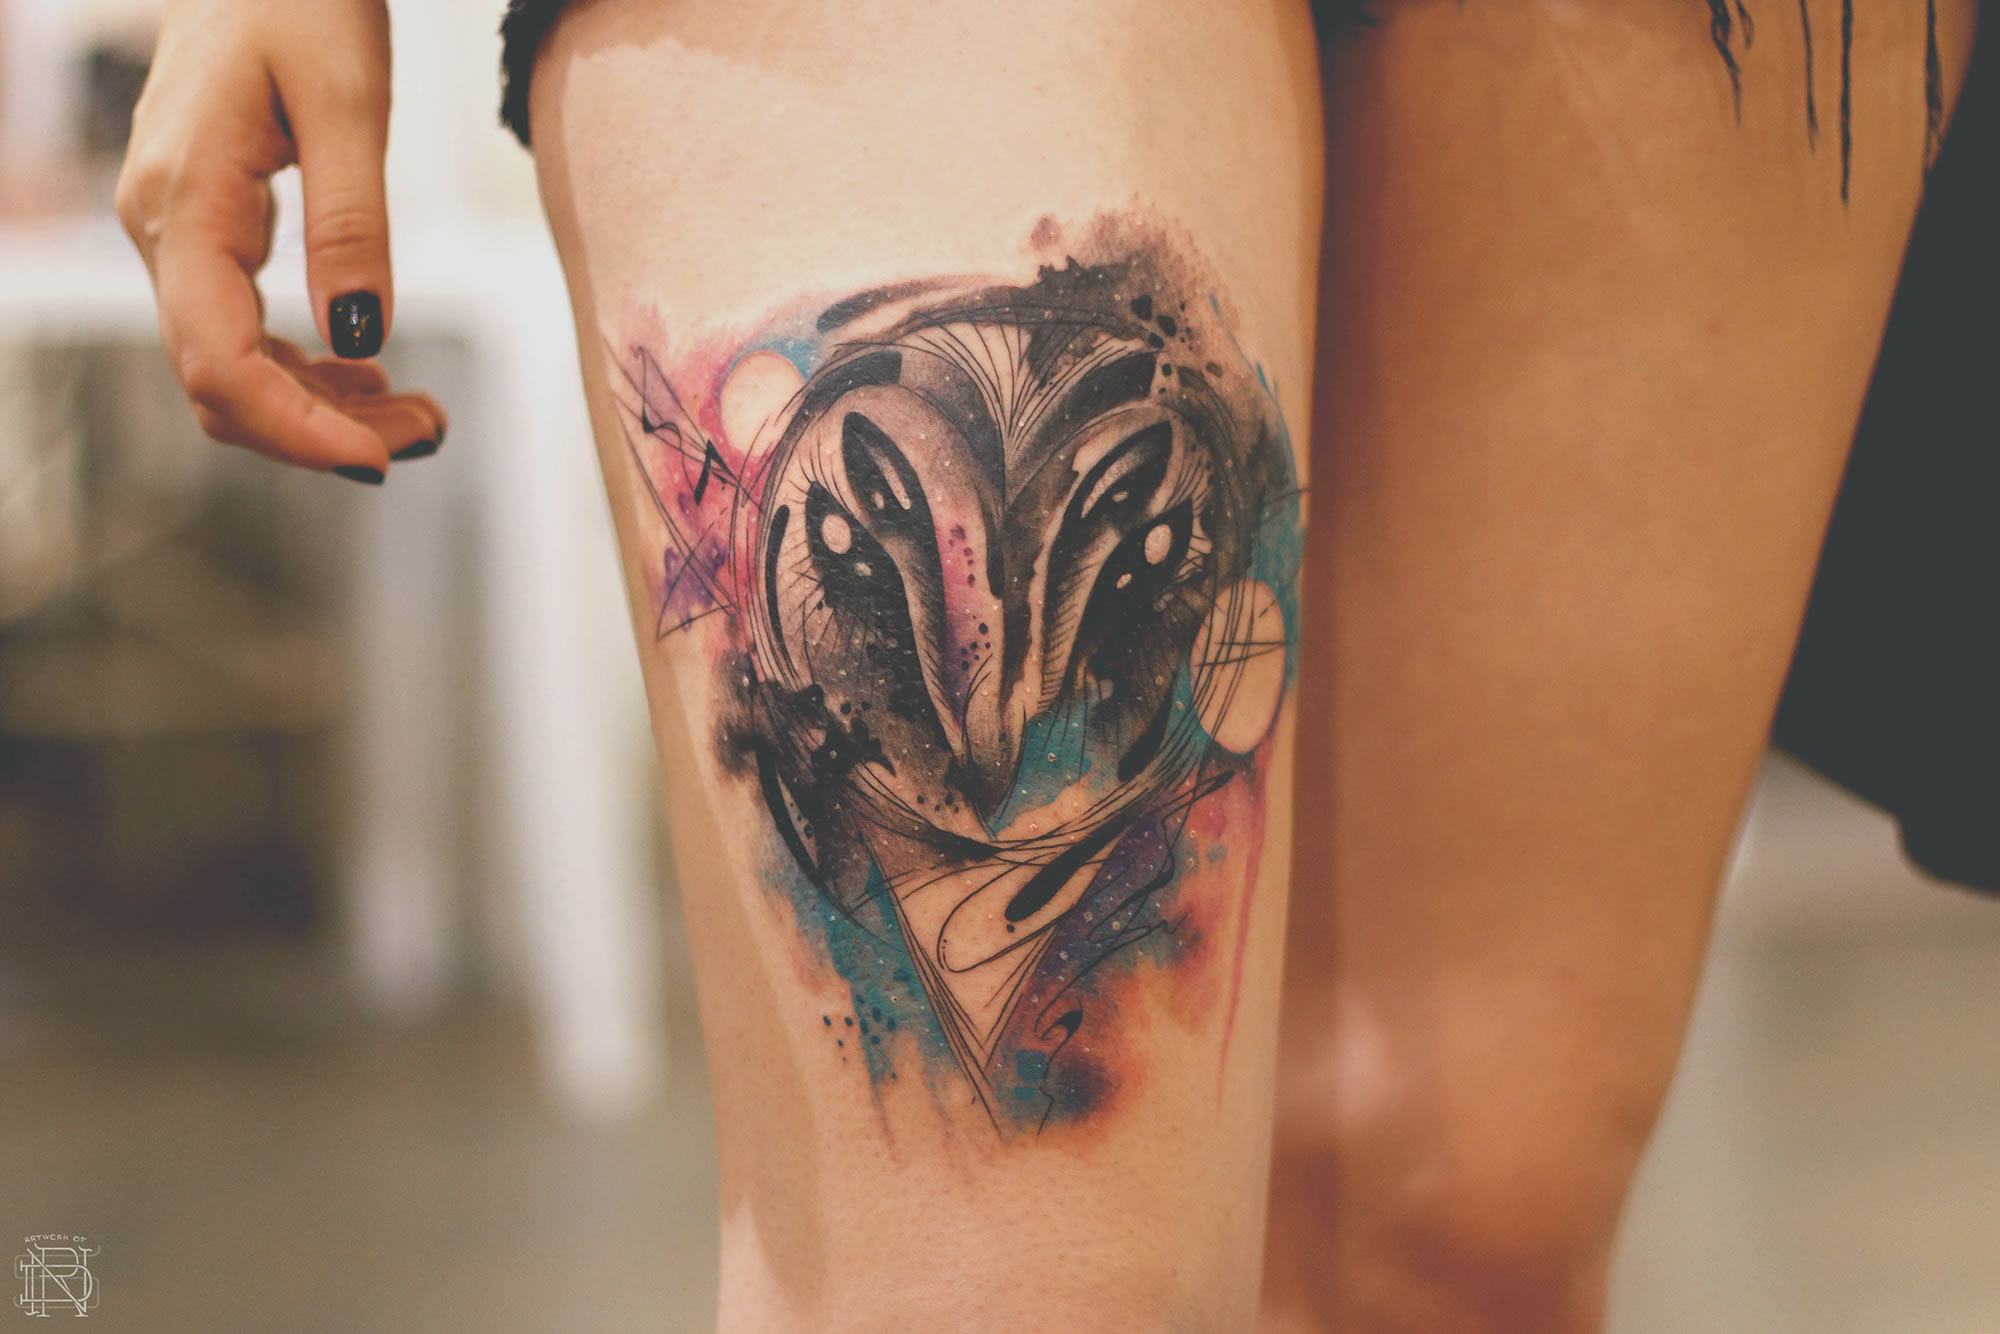 Interview with Watercolor Tattooer Dener Silva